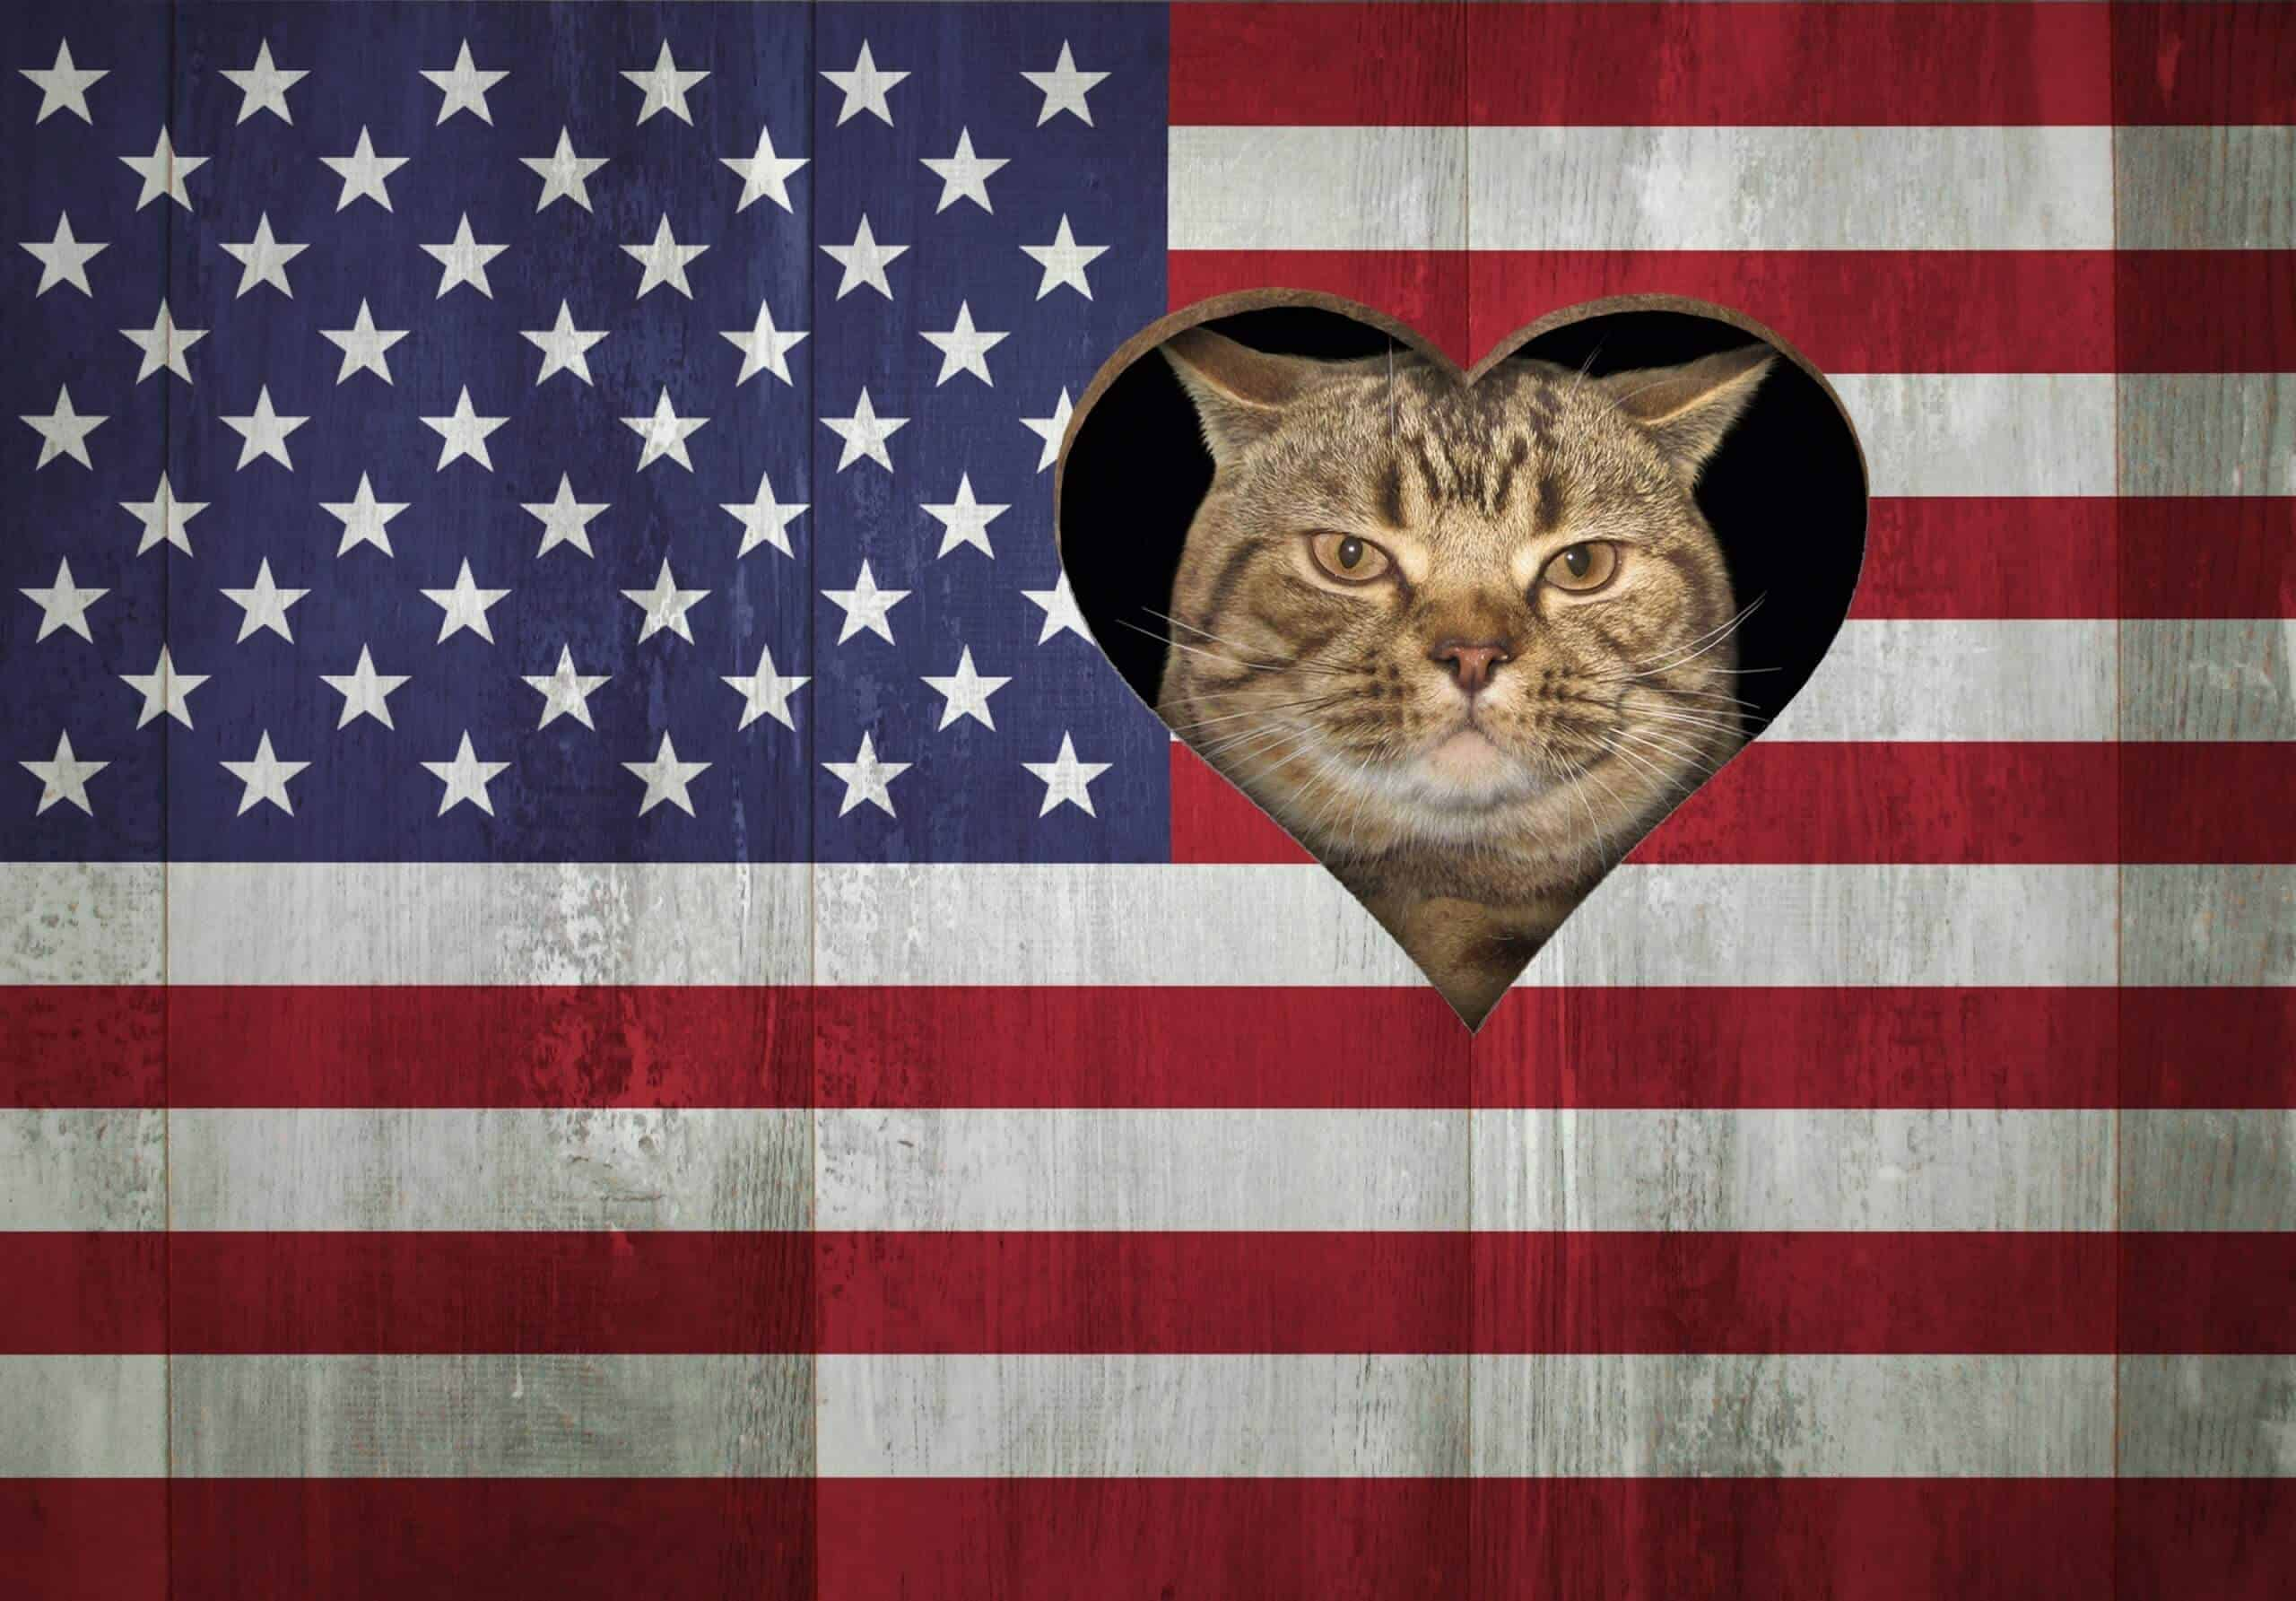 The cat looks through a hole in the US flag